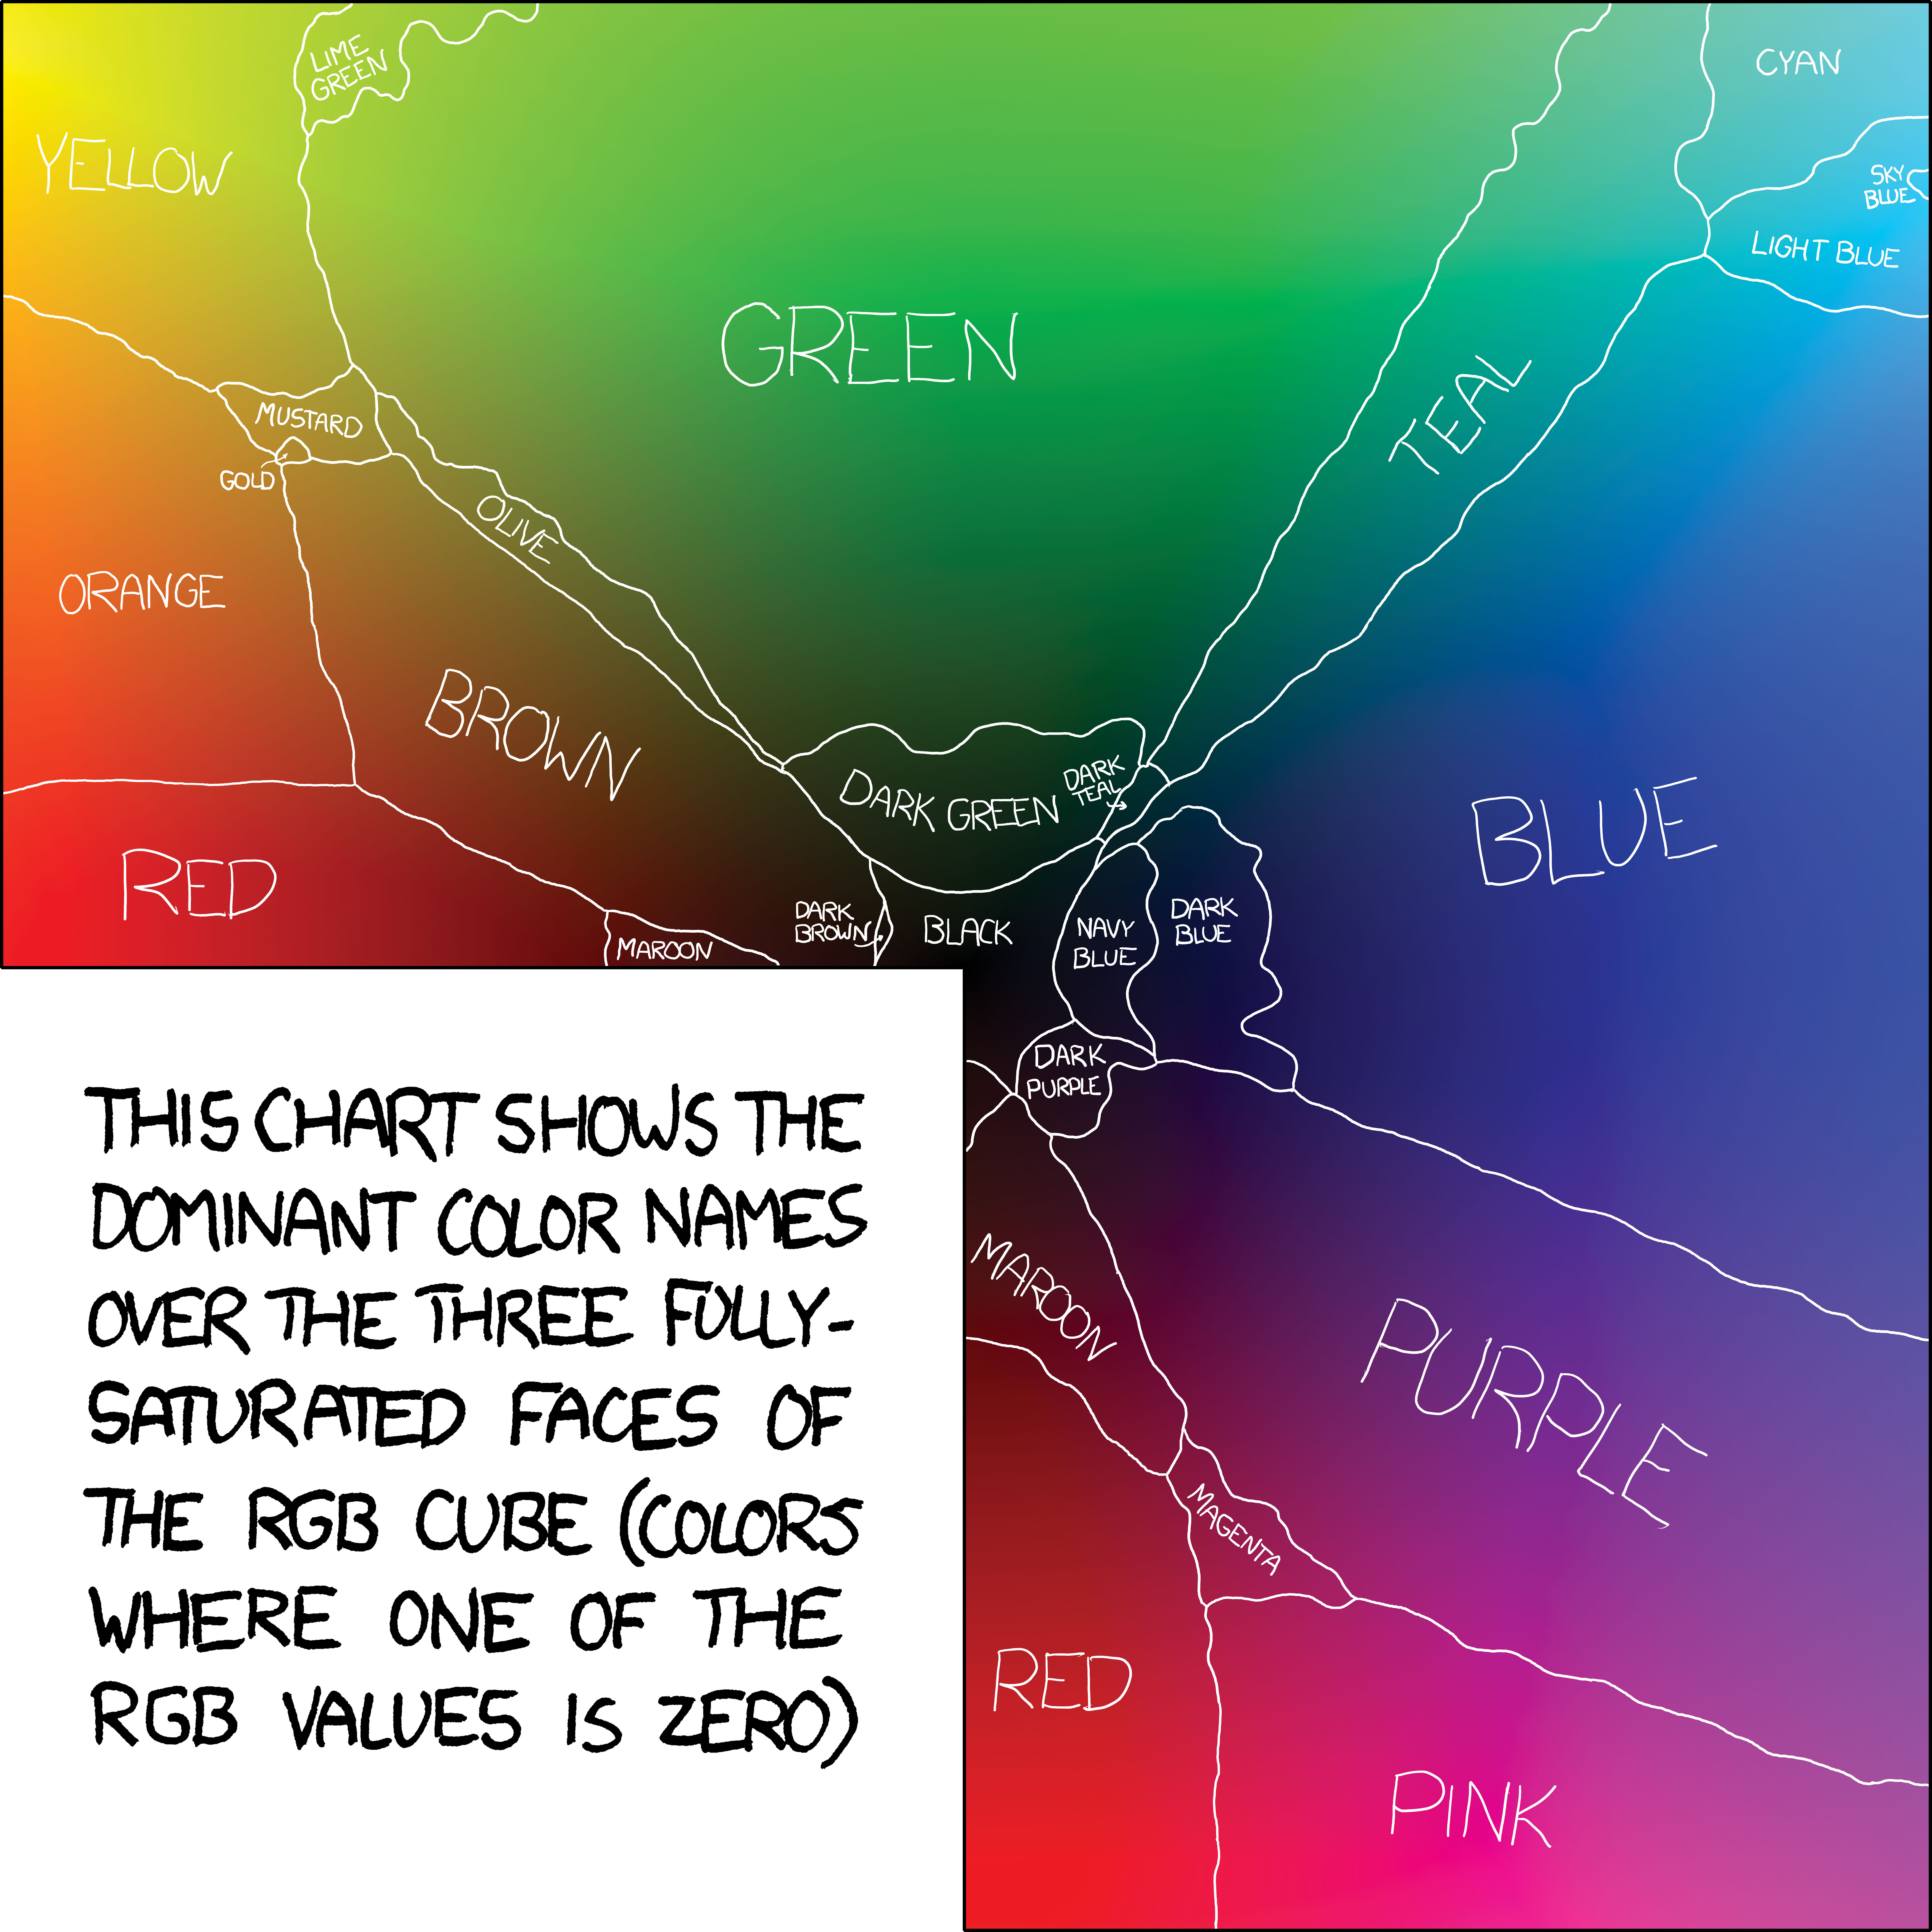 A webcomic from XKCD, reading 'This chart shows the dominant color names over the three fully-saturated faces of the RGB cube (colors where one of the RGB values is zero)